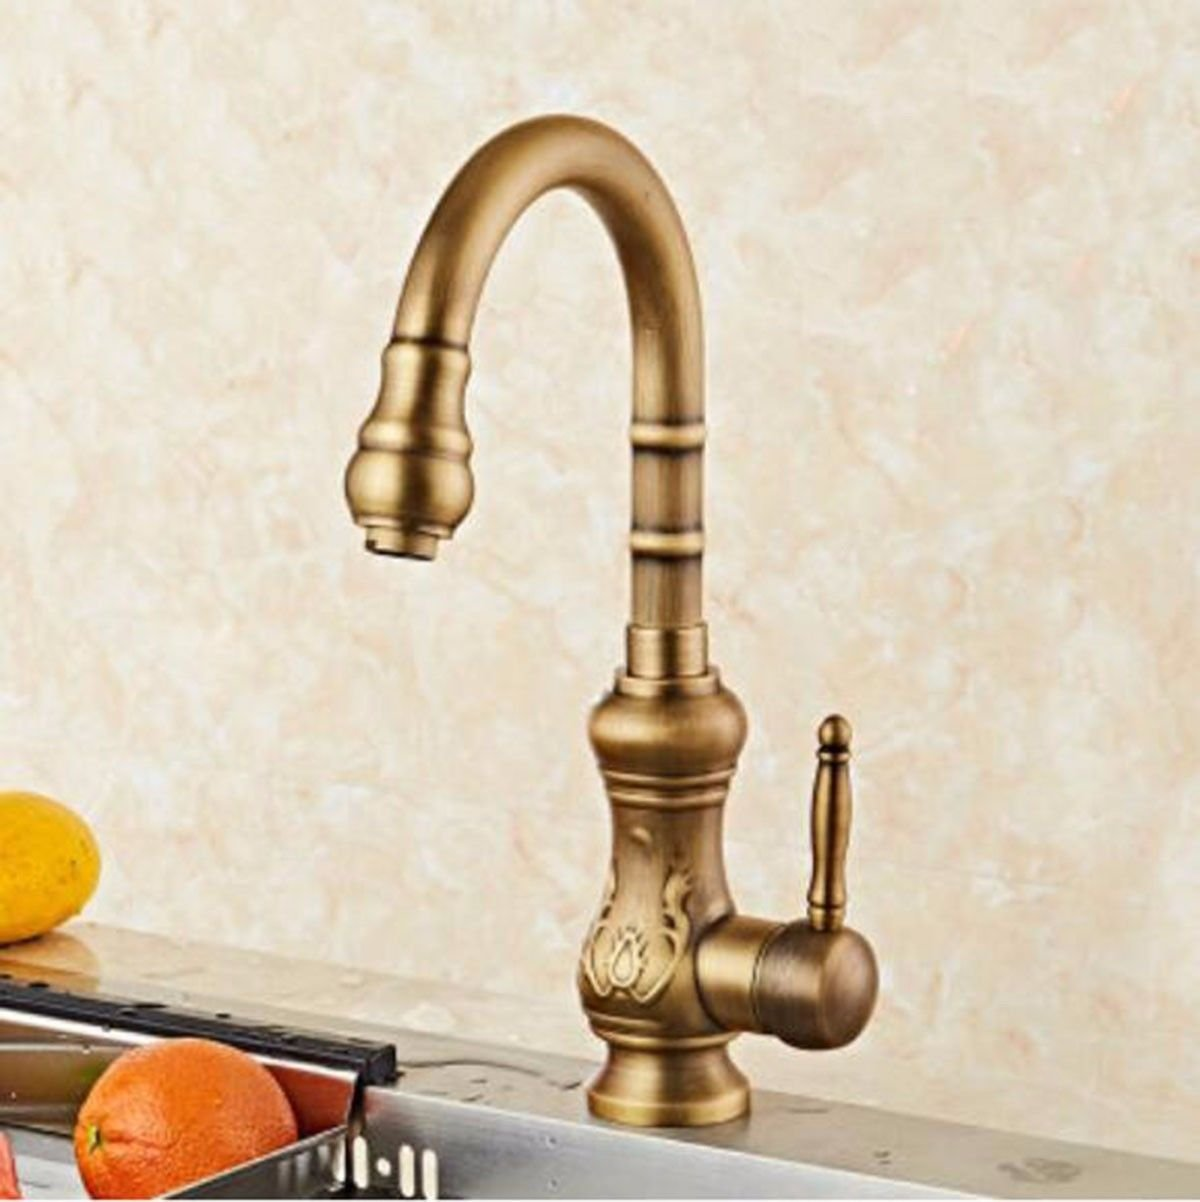 H Oudan Basin Mixer Tap Bathroom Sink Faucet Euro-copper antique kitchen faucet hot and cold retro American dish washing basin basin redation single handle sink tap E (color   A)